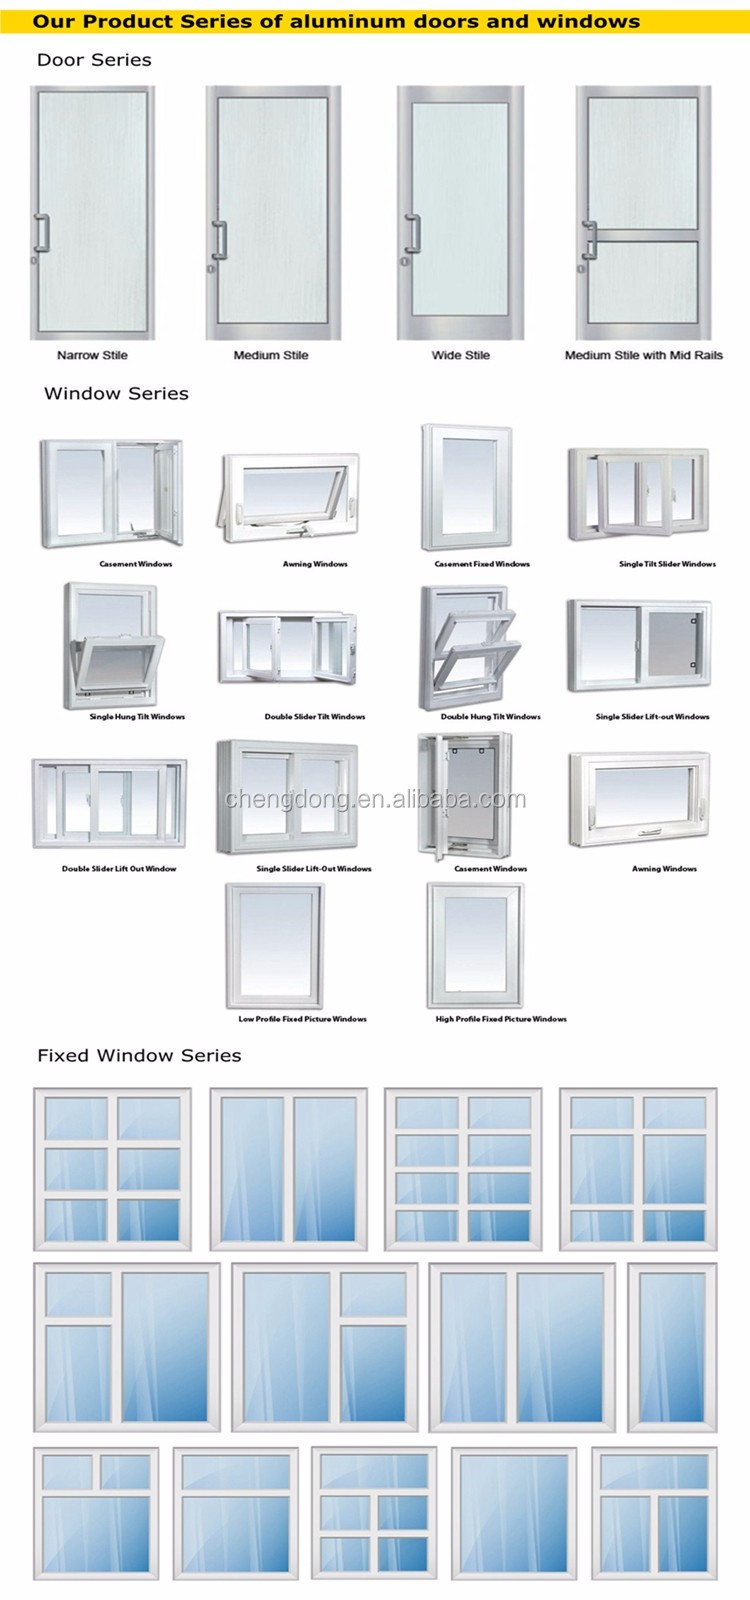 aluminium sliding door systems, View door systems, CHENGDONG+ ...